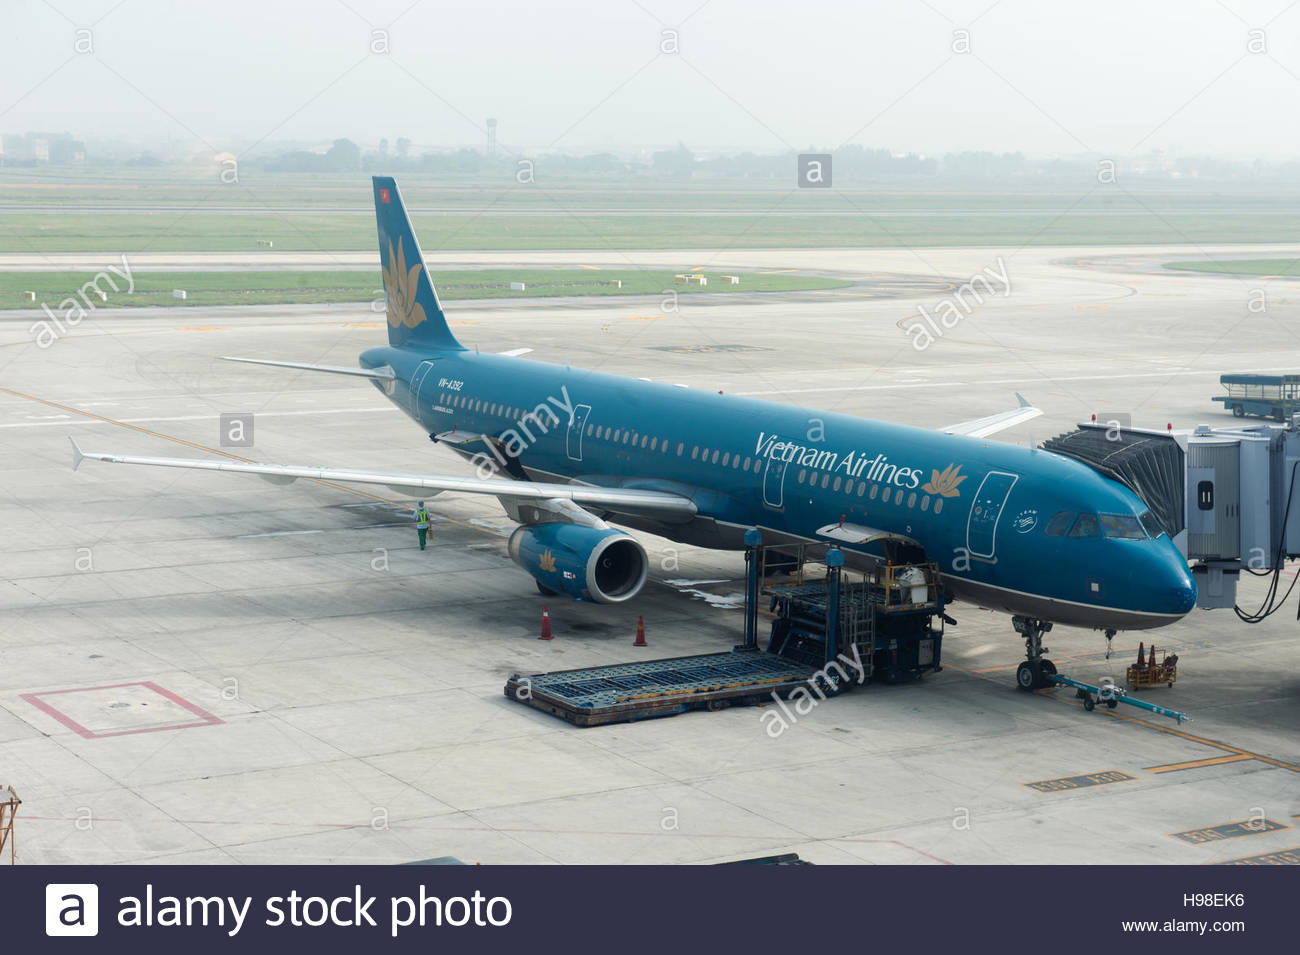 Ha Noi Vietnam. Vietnam Airlines aircraft on the apron at Nội Bài International Airport. VN-A392 Airbus A321 - Stock Image